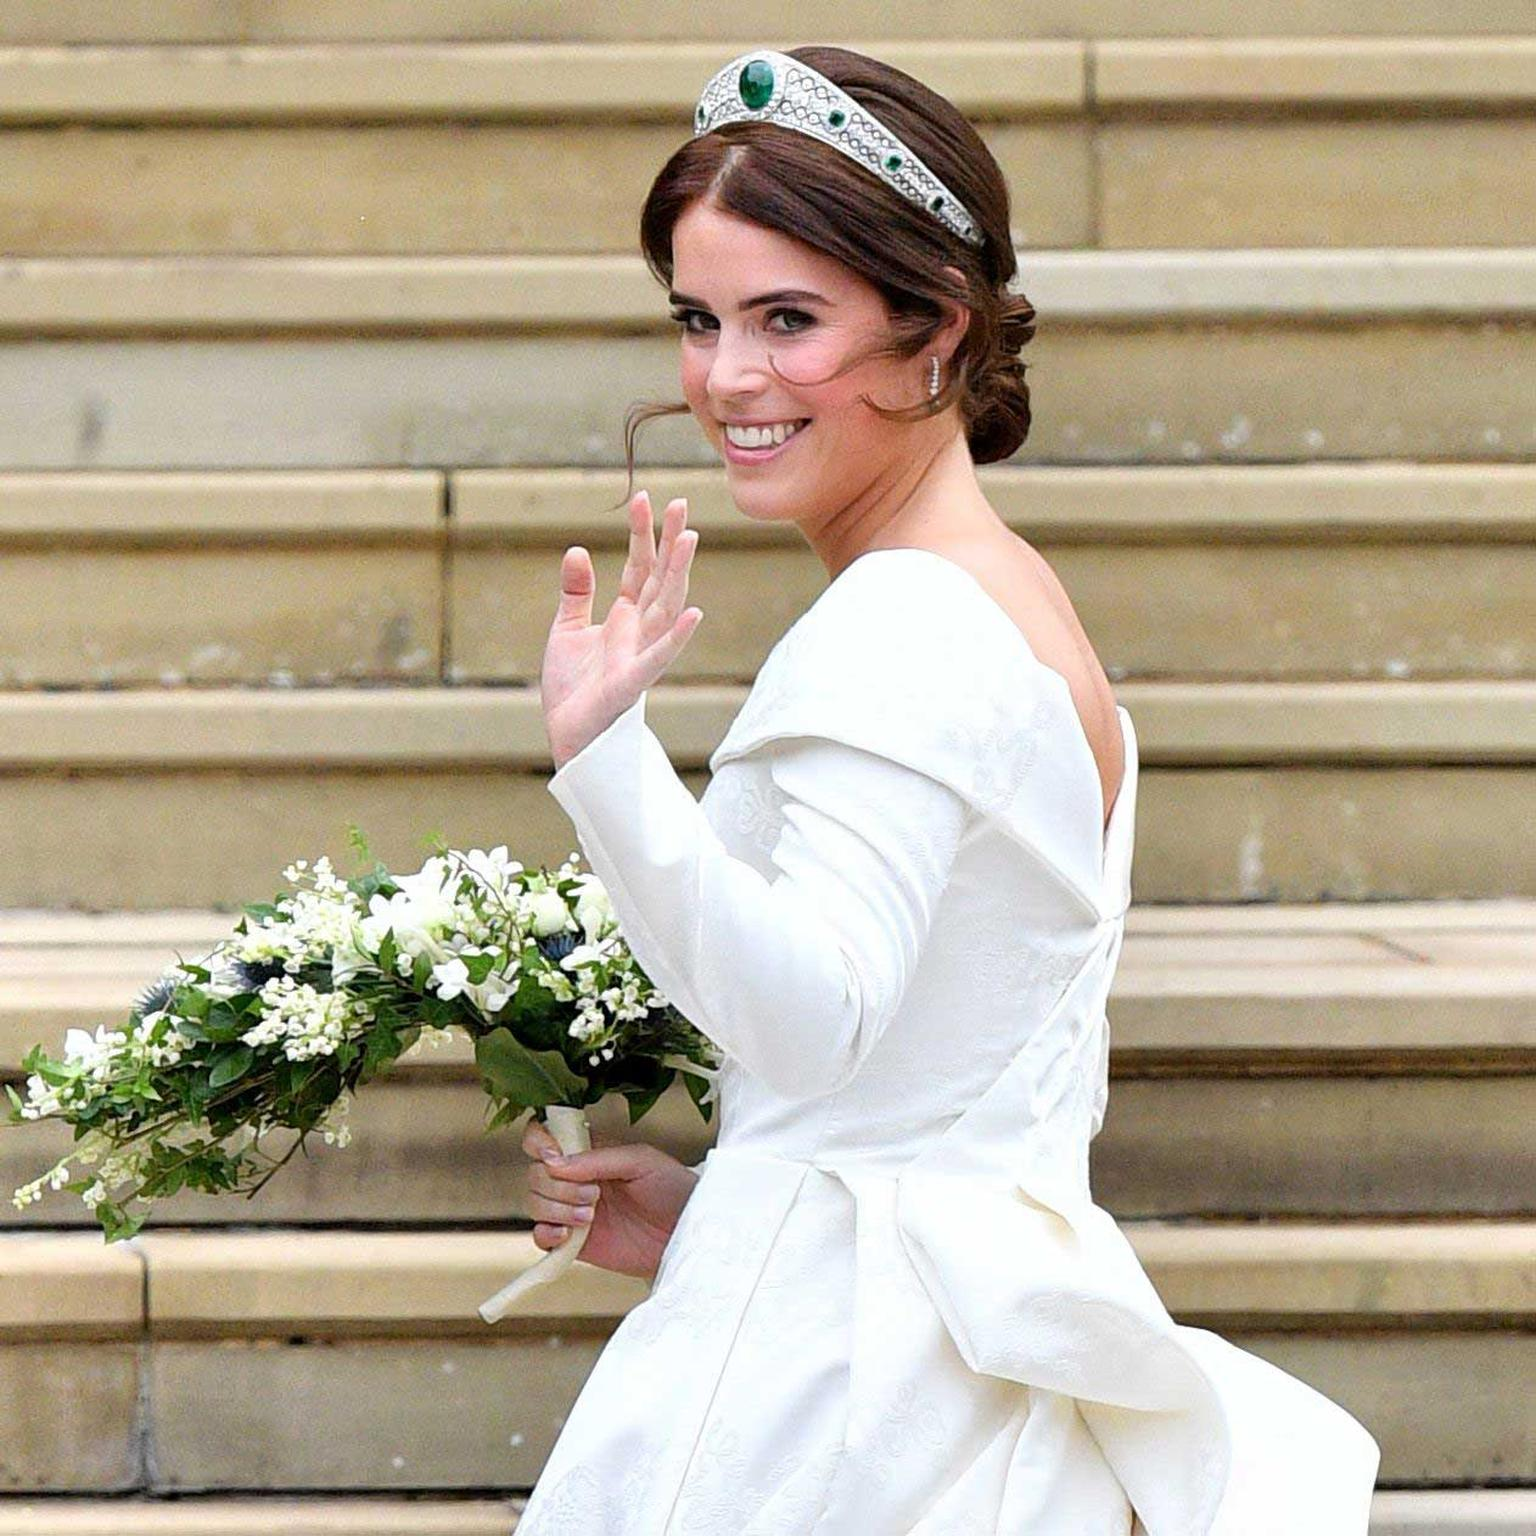 Eugenie-waving-Rex-bought-image